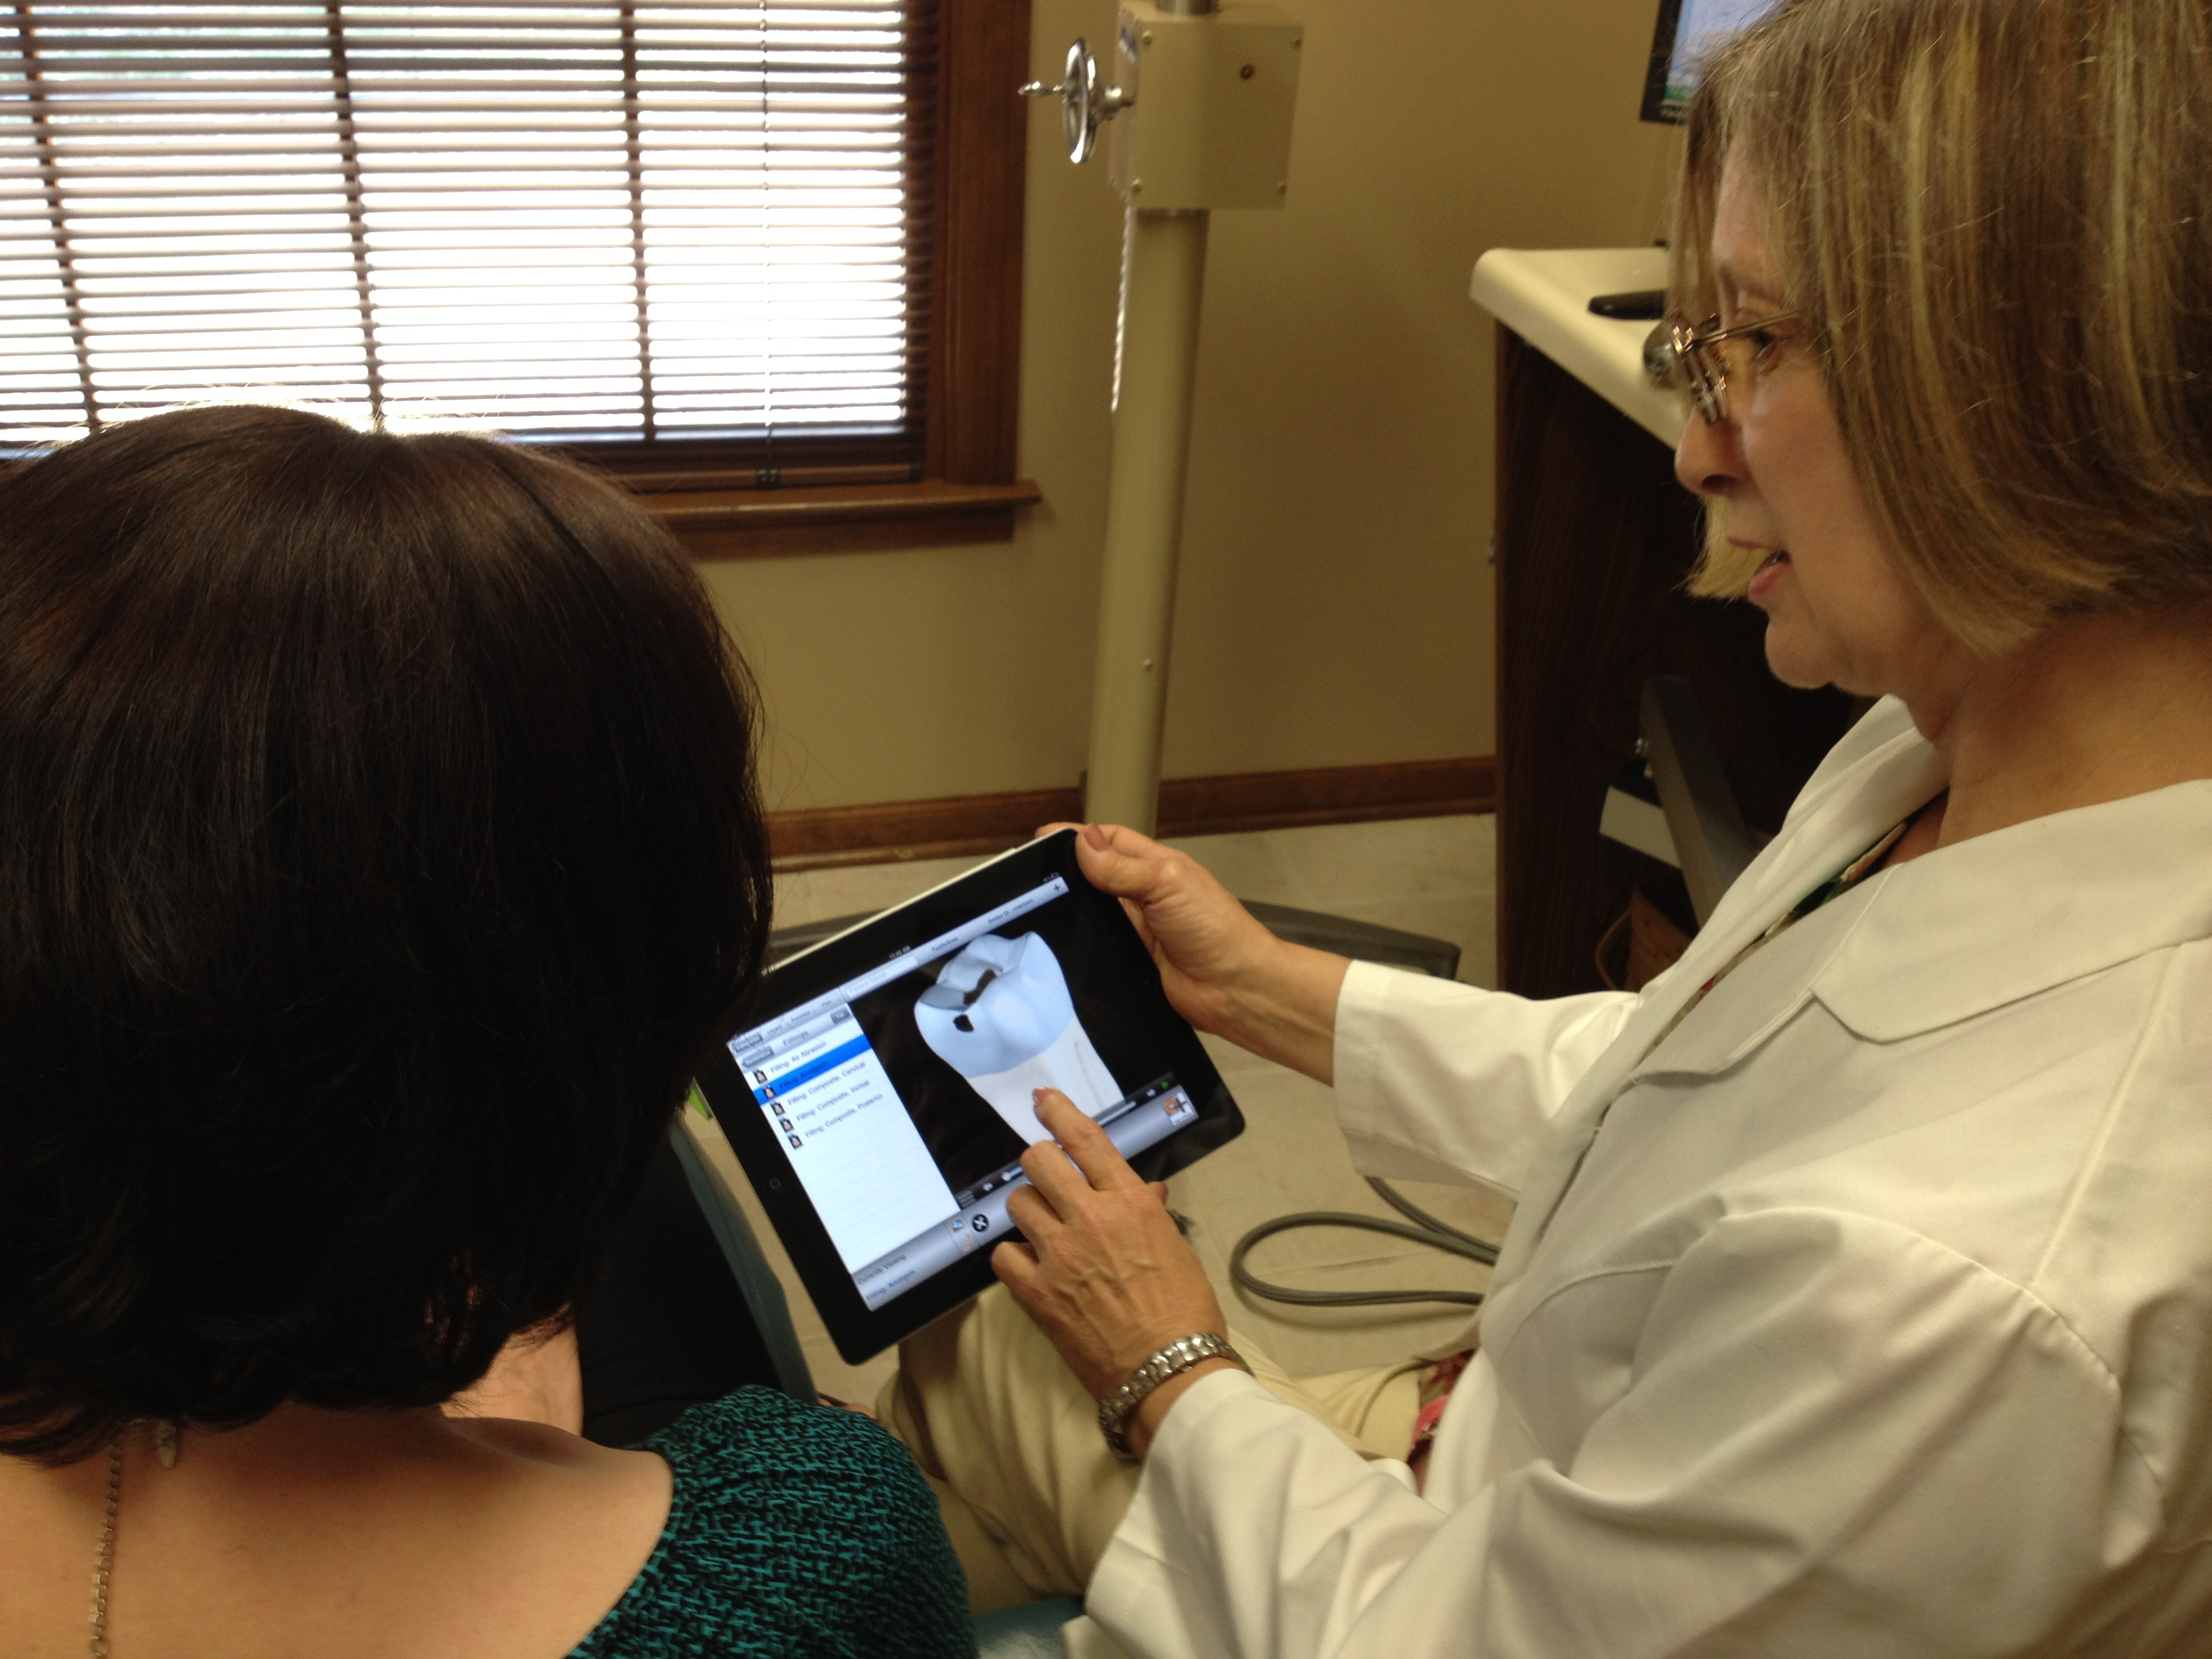 Dr. Gates reviews treatment options with a patient